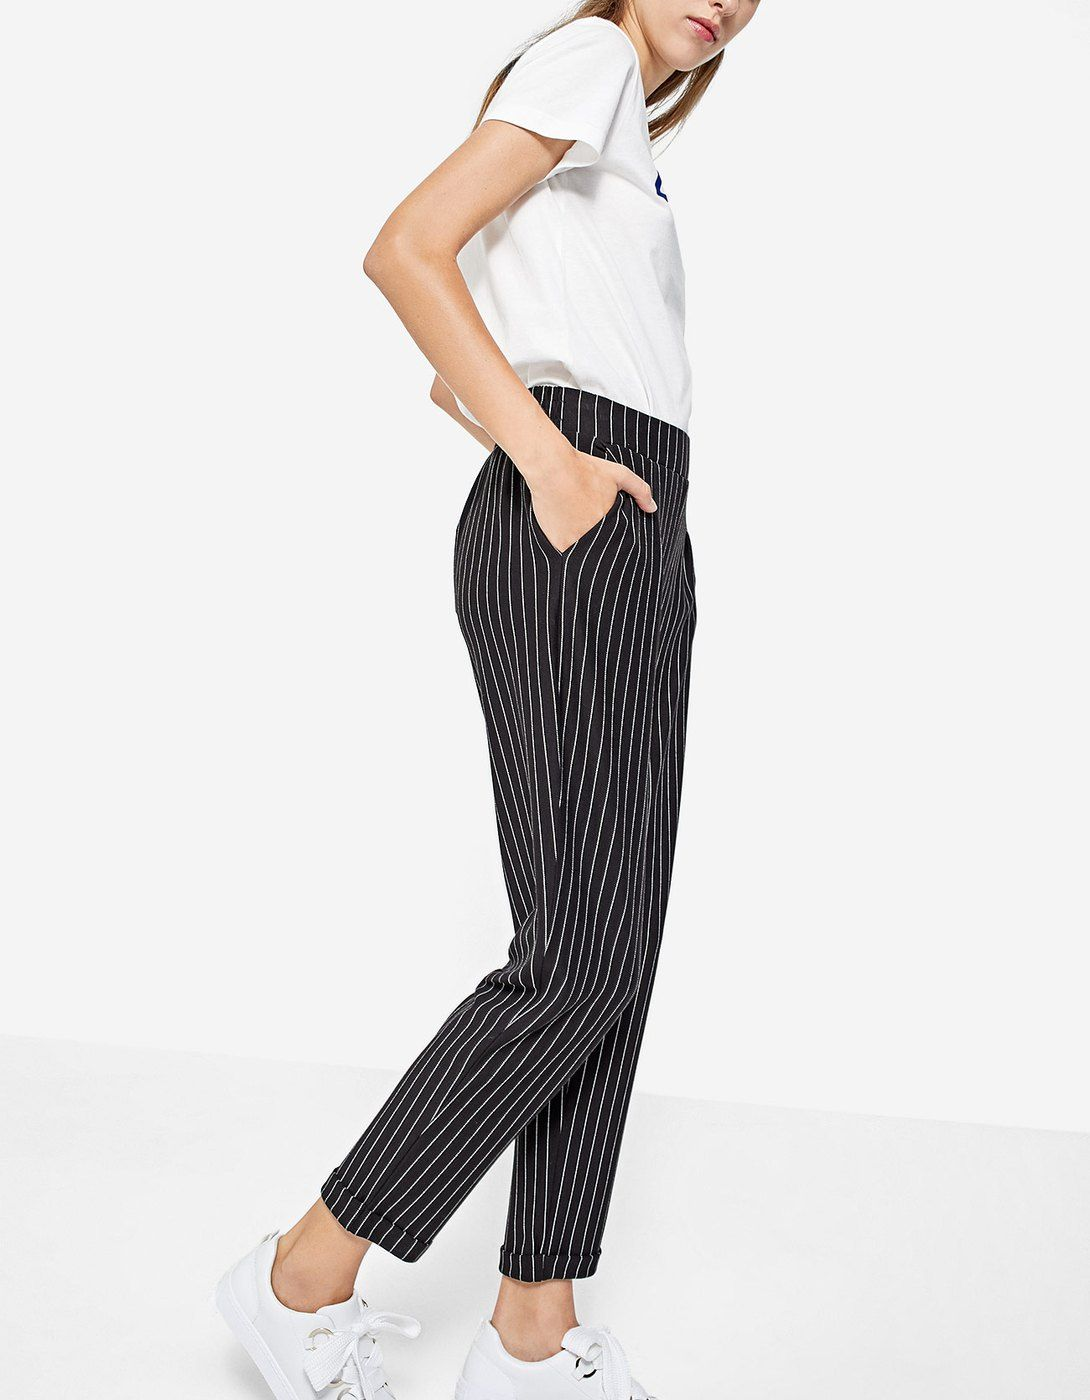 At Stradivarius You Ll Find 1 Knit Carrot Fit Trousers For Just 5595 Hungary Visit Now To Discover This And More Specia Pretty Winter Outfits Fashion Outfits